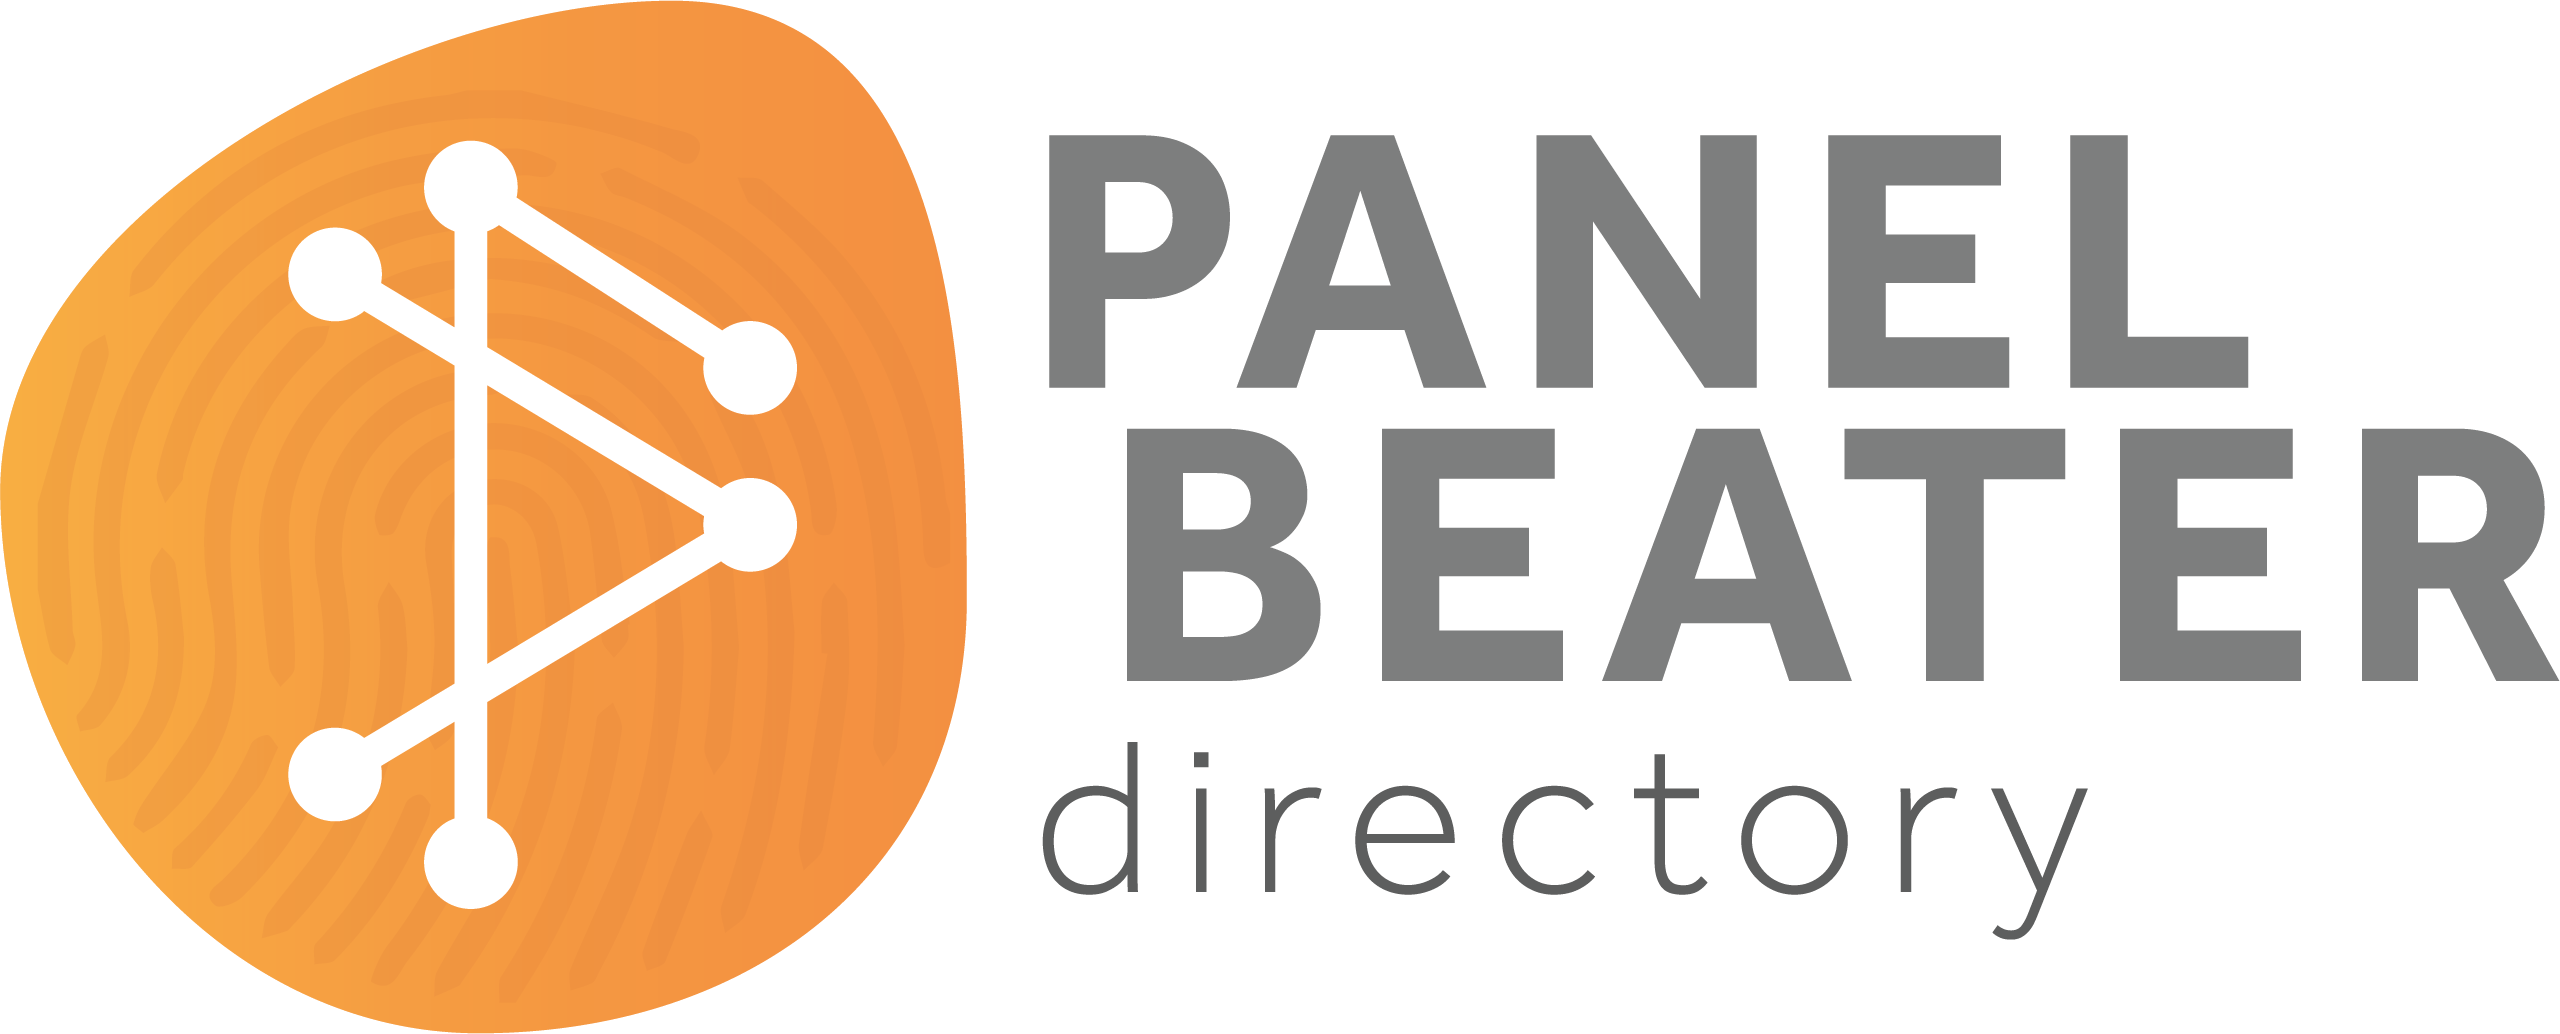 Panel Beater Directory